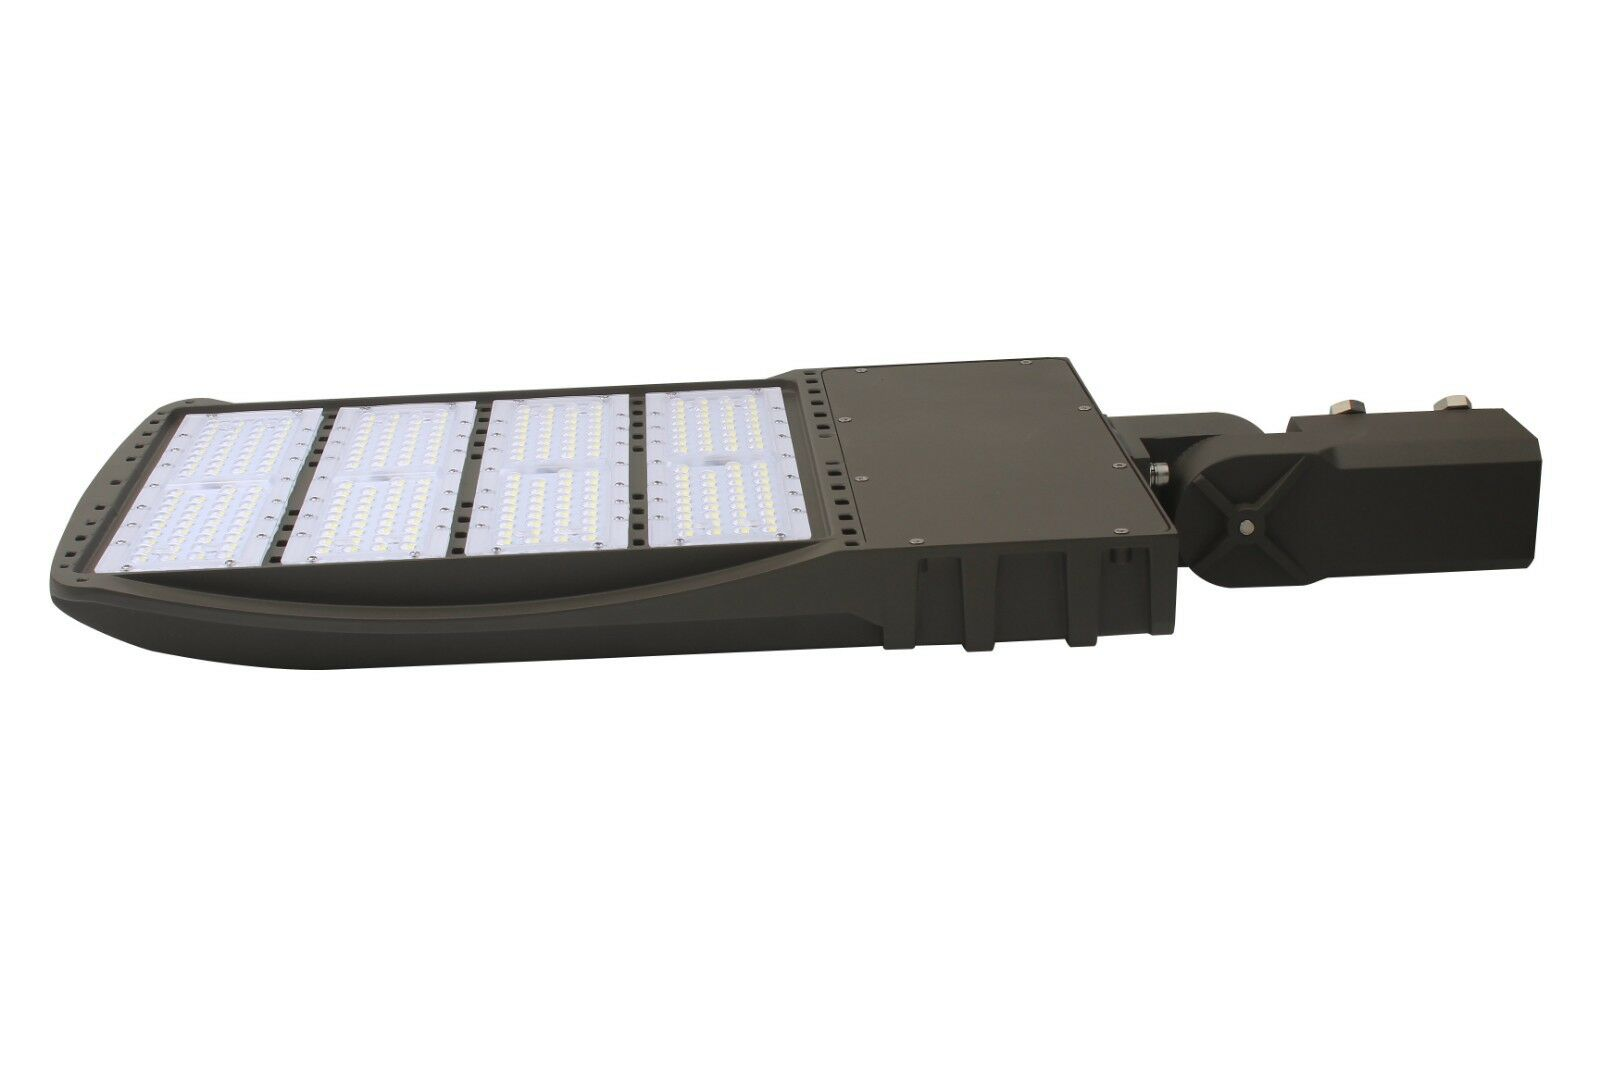 LED  shoes box 300W flood light 5000K bronze